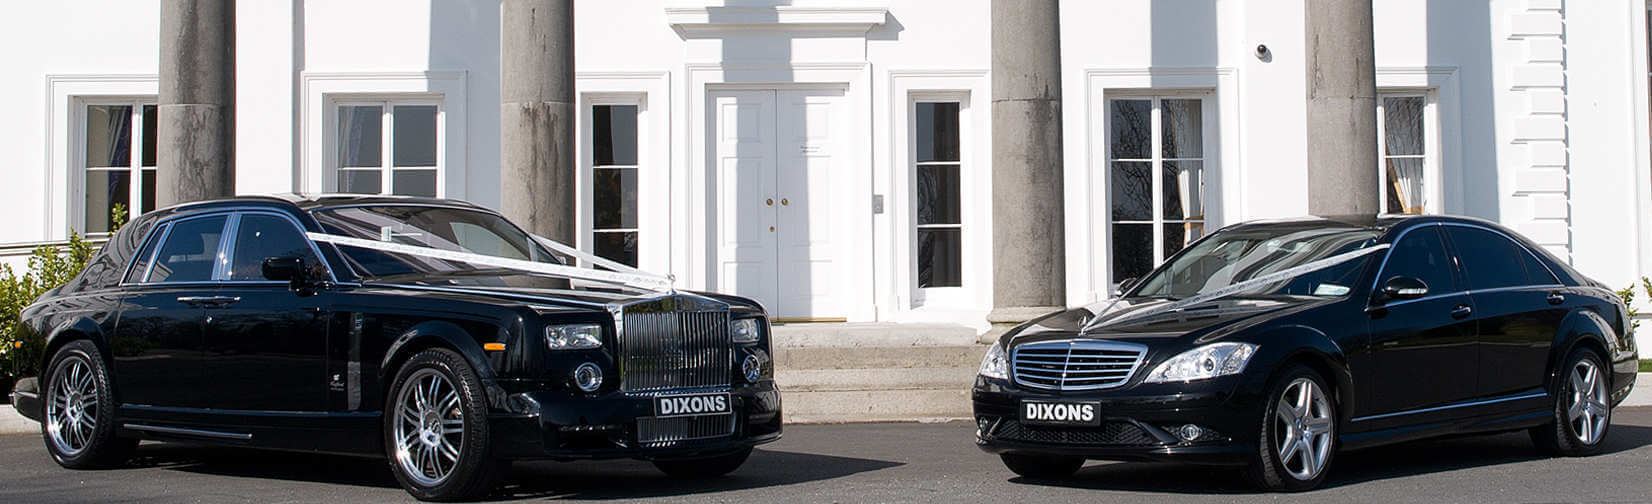 Dixons Wedding Limousines Mercedes Rolls Royce Bentley